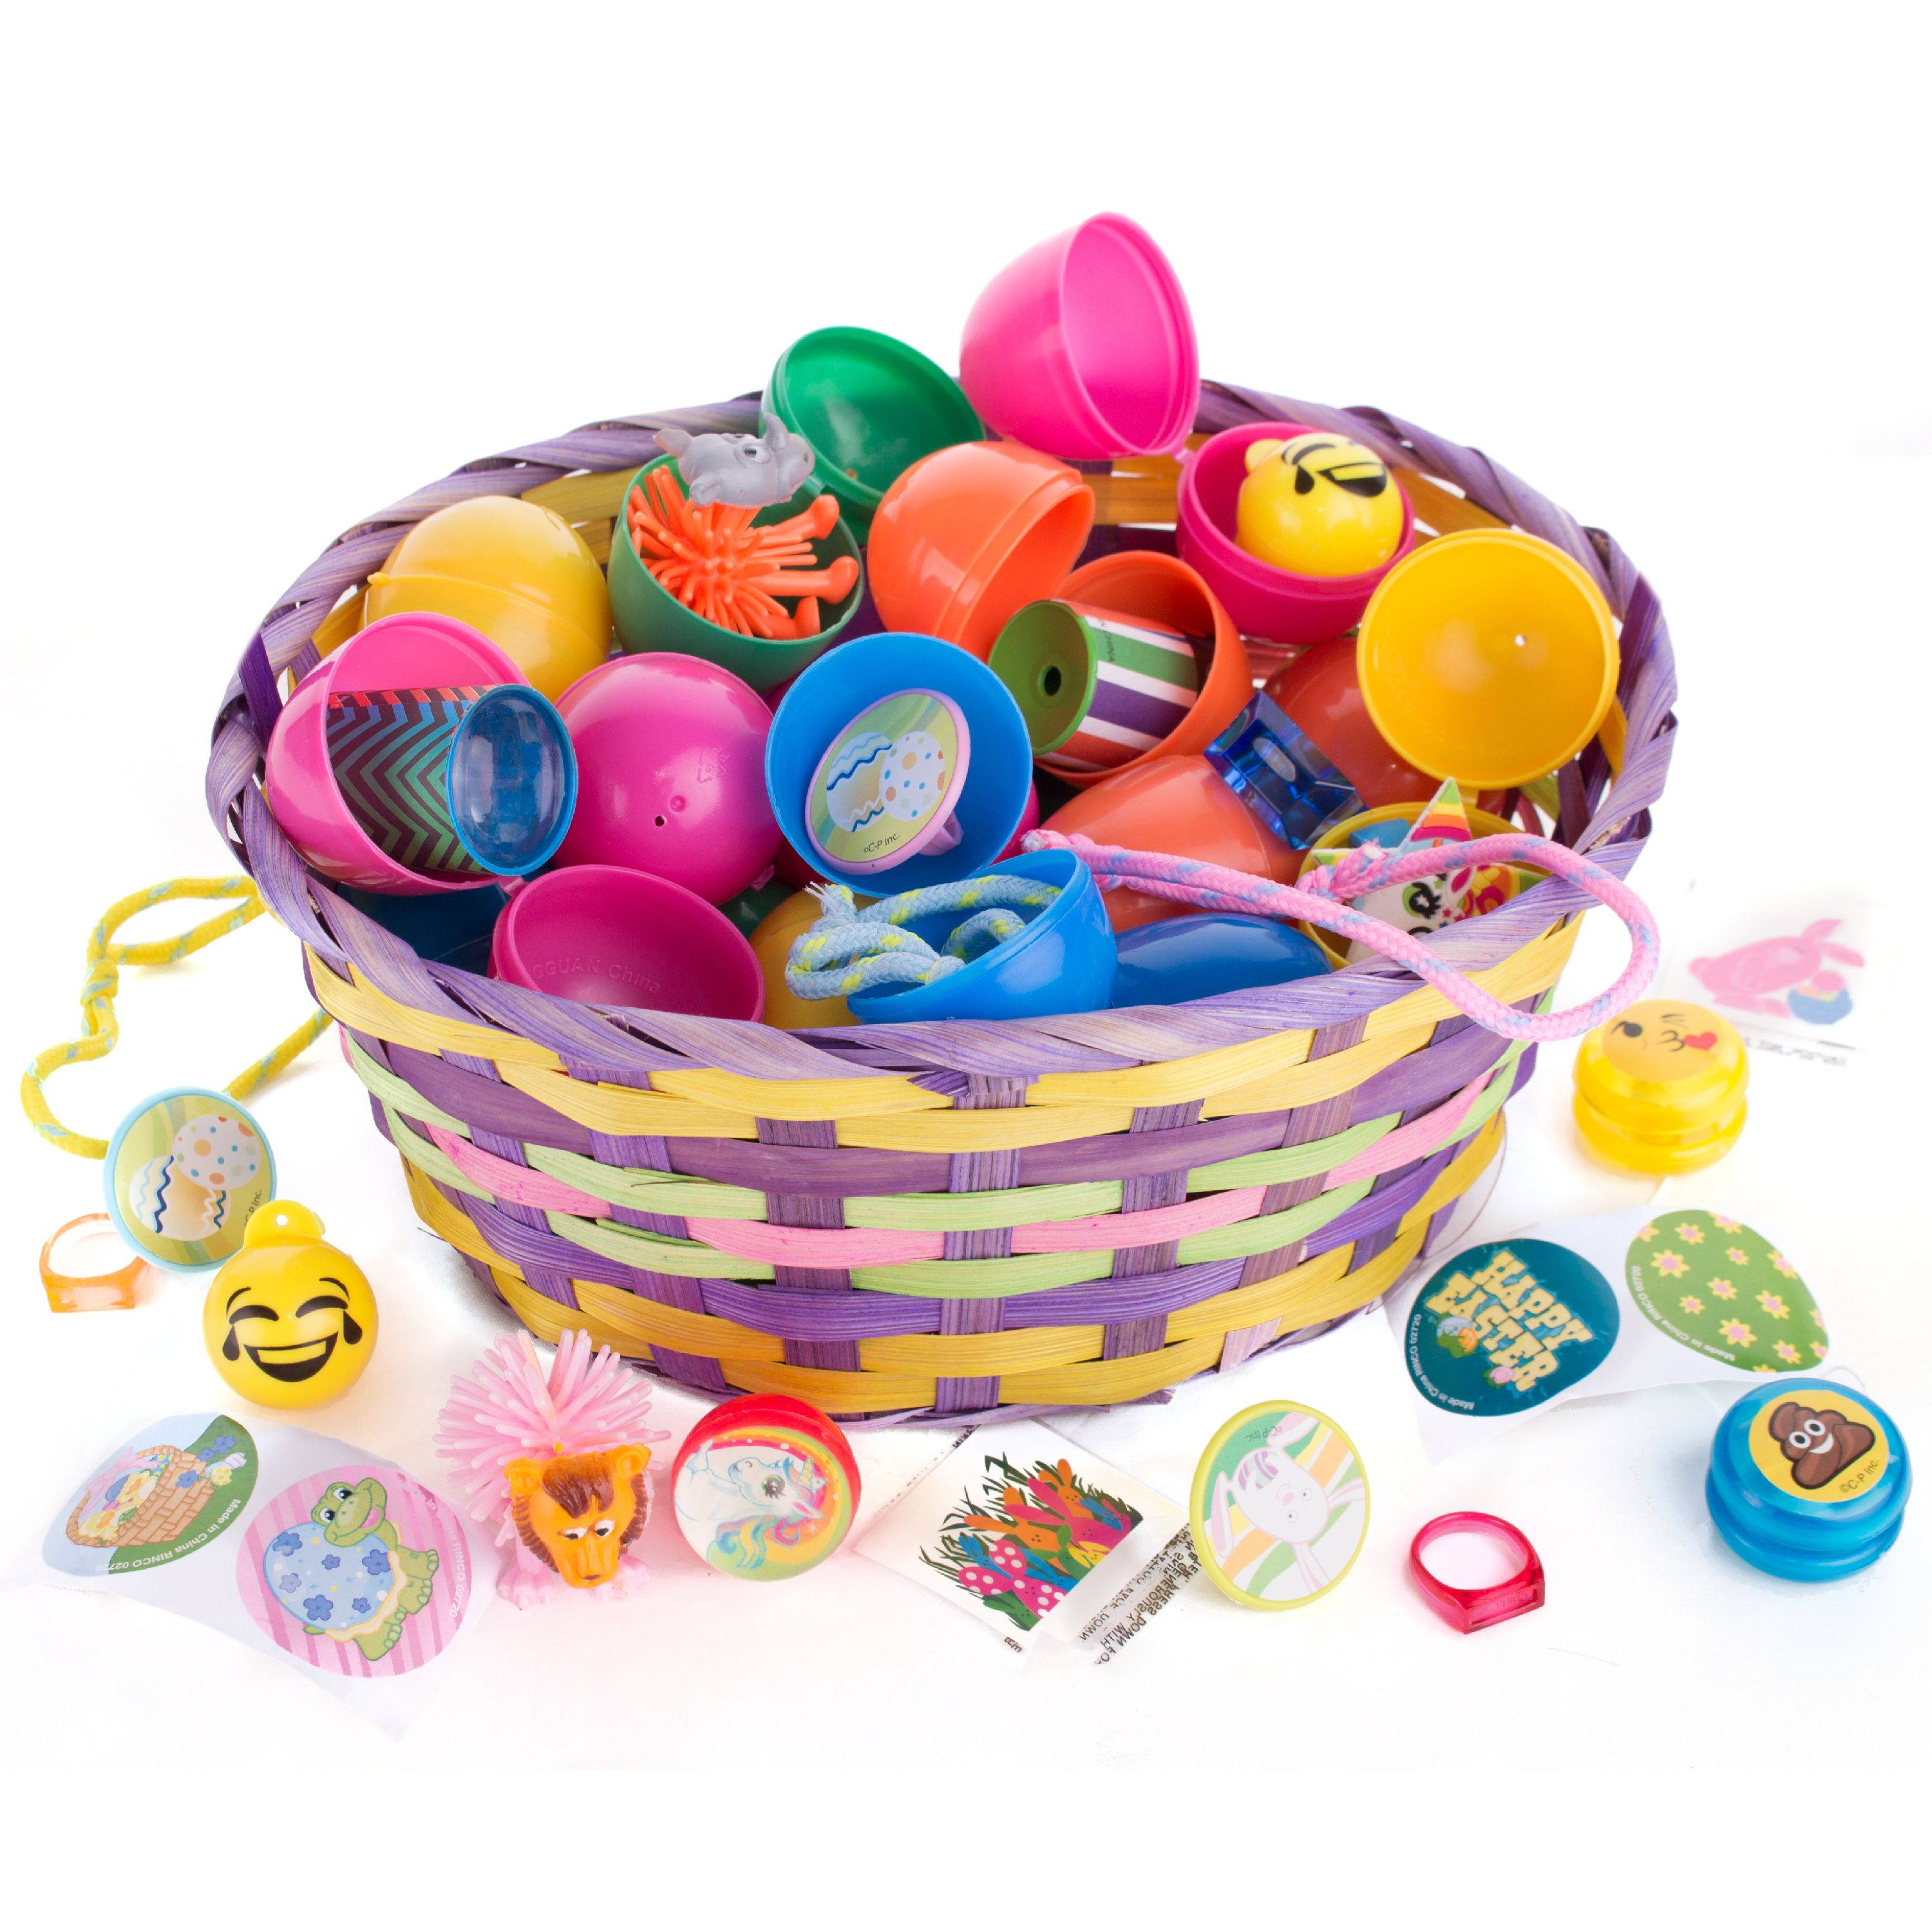 Bulk Lot Toy Filled Quality Easter Hunt Eggs for Kids, Assorted Solid Colors